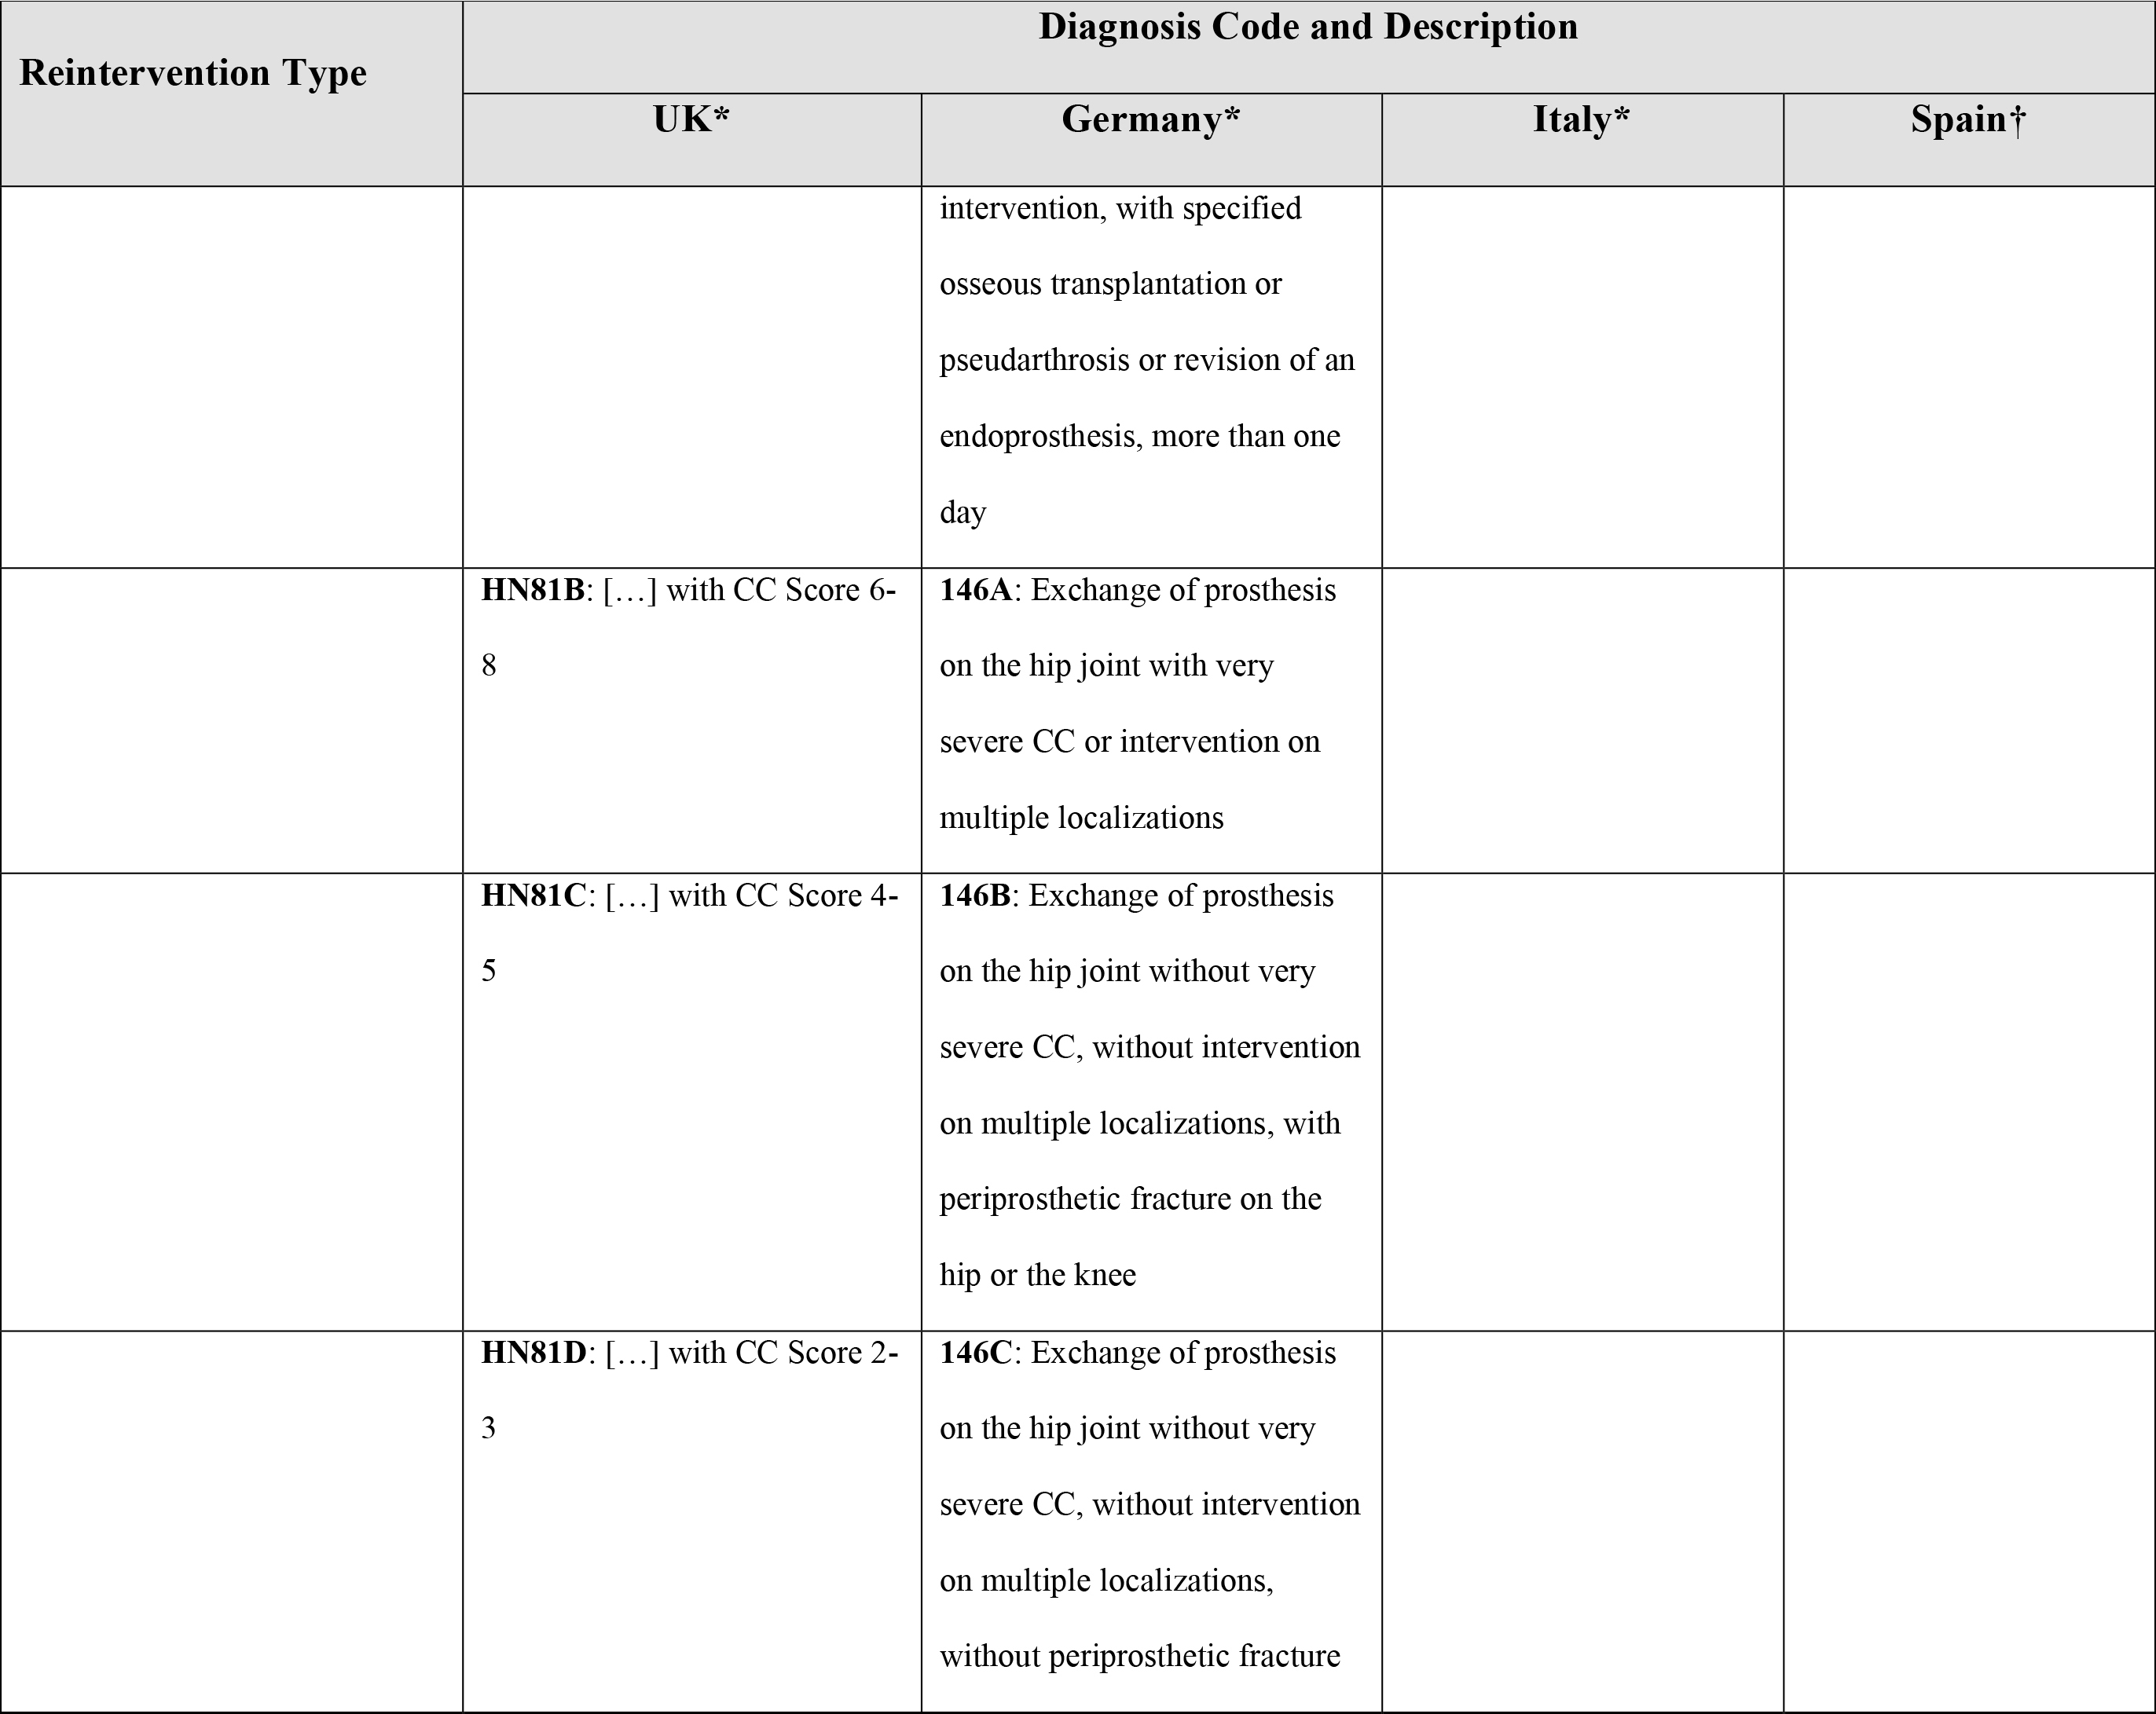 Hip arthroplasty reintervention mapping to diagnostic codes by country